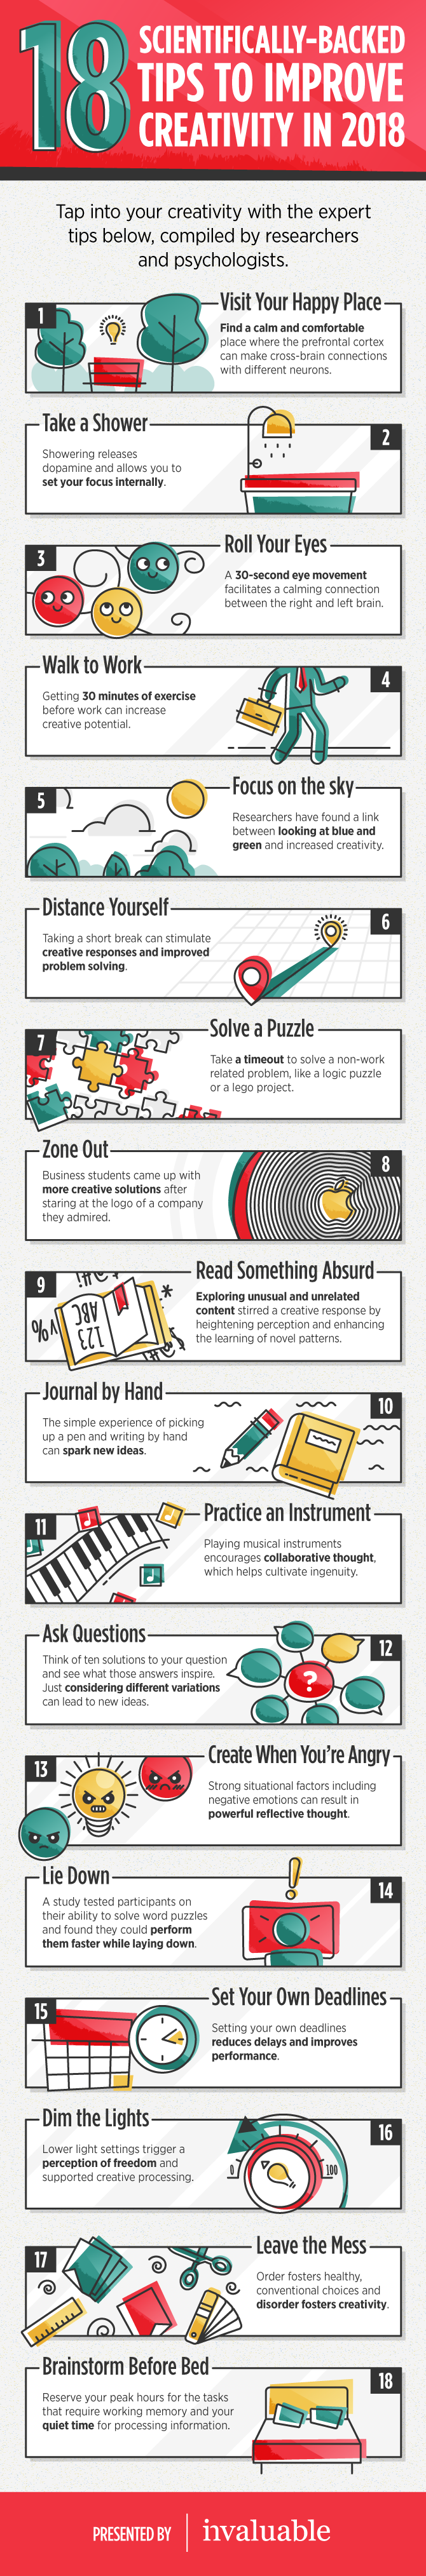 invaluable creativity tips infographic